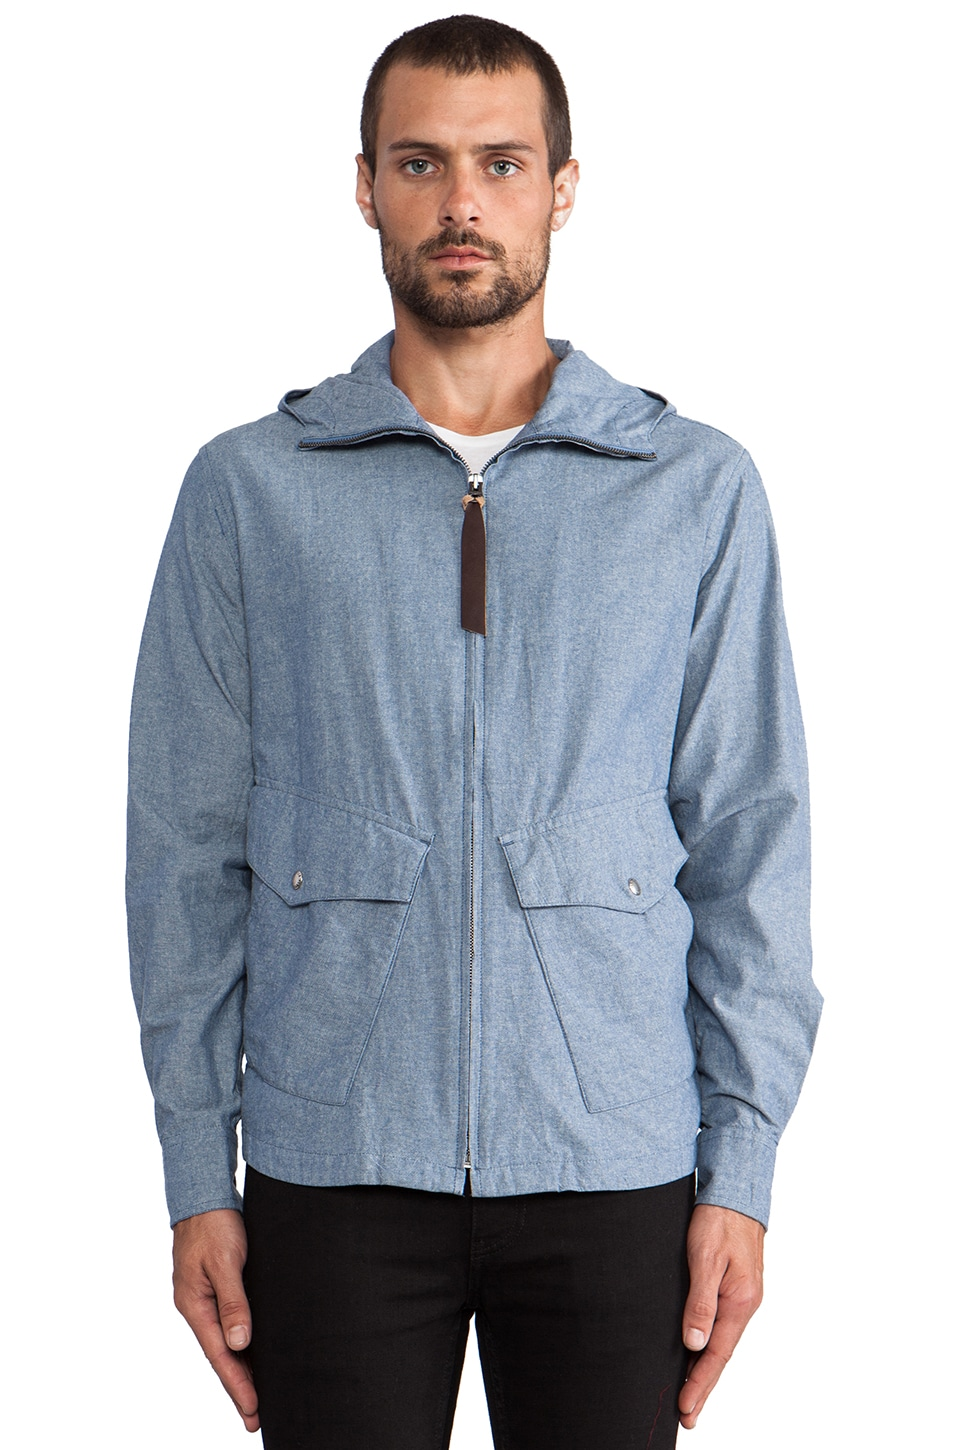 Penfield Braybrooke Zip Hooded Shirt in Blue